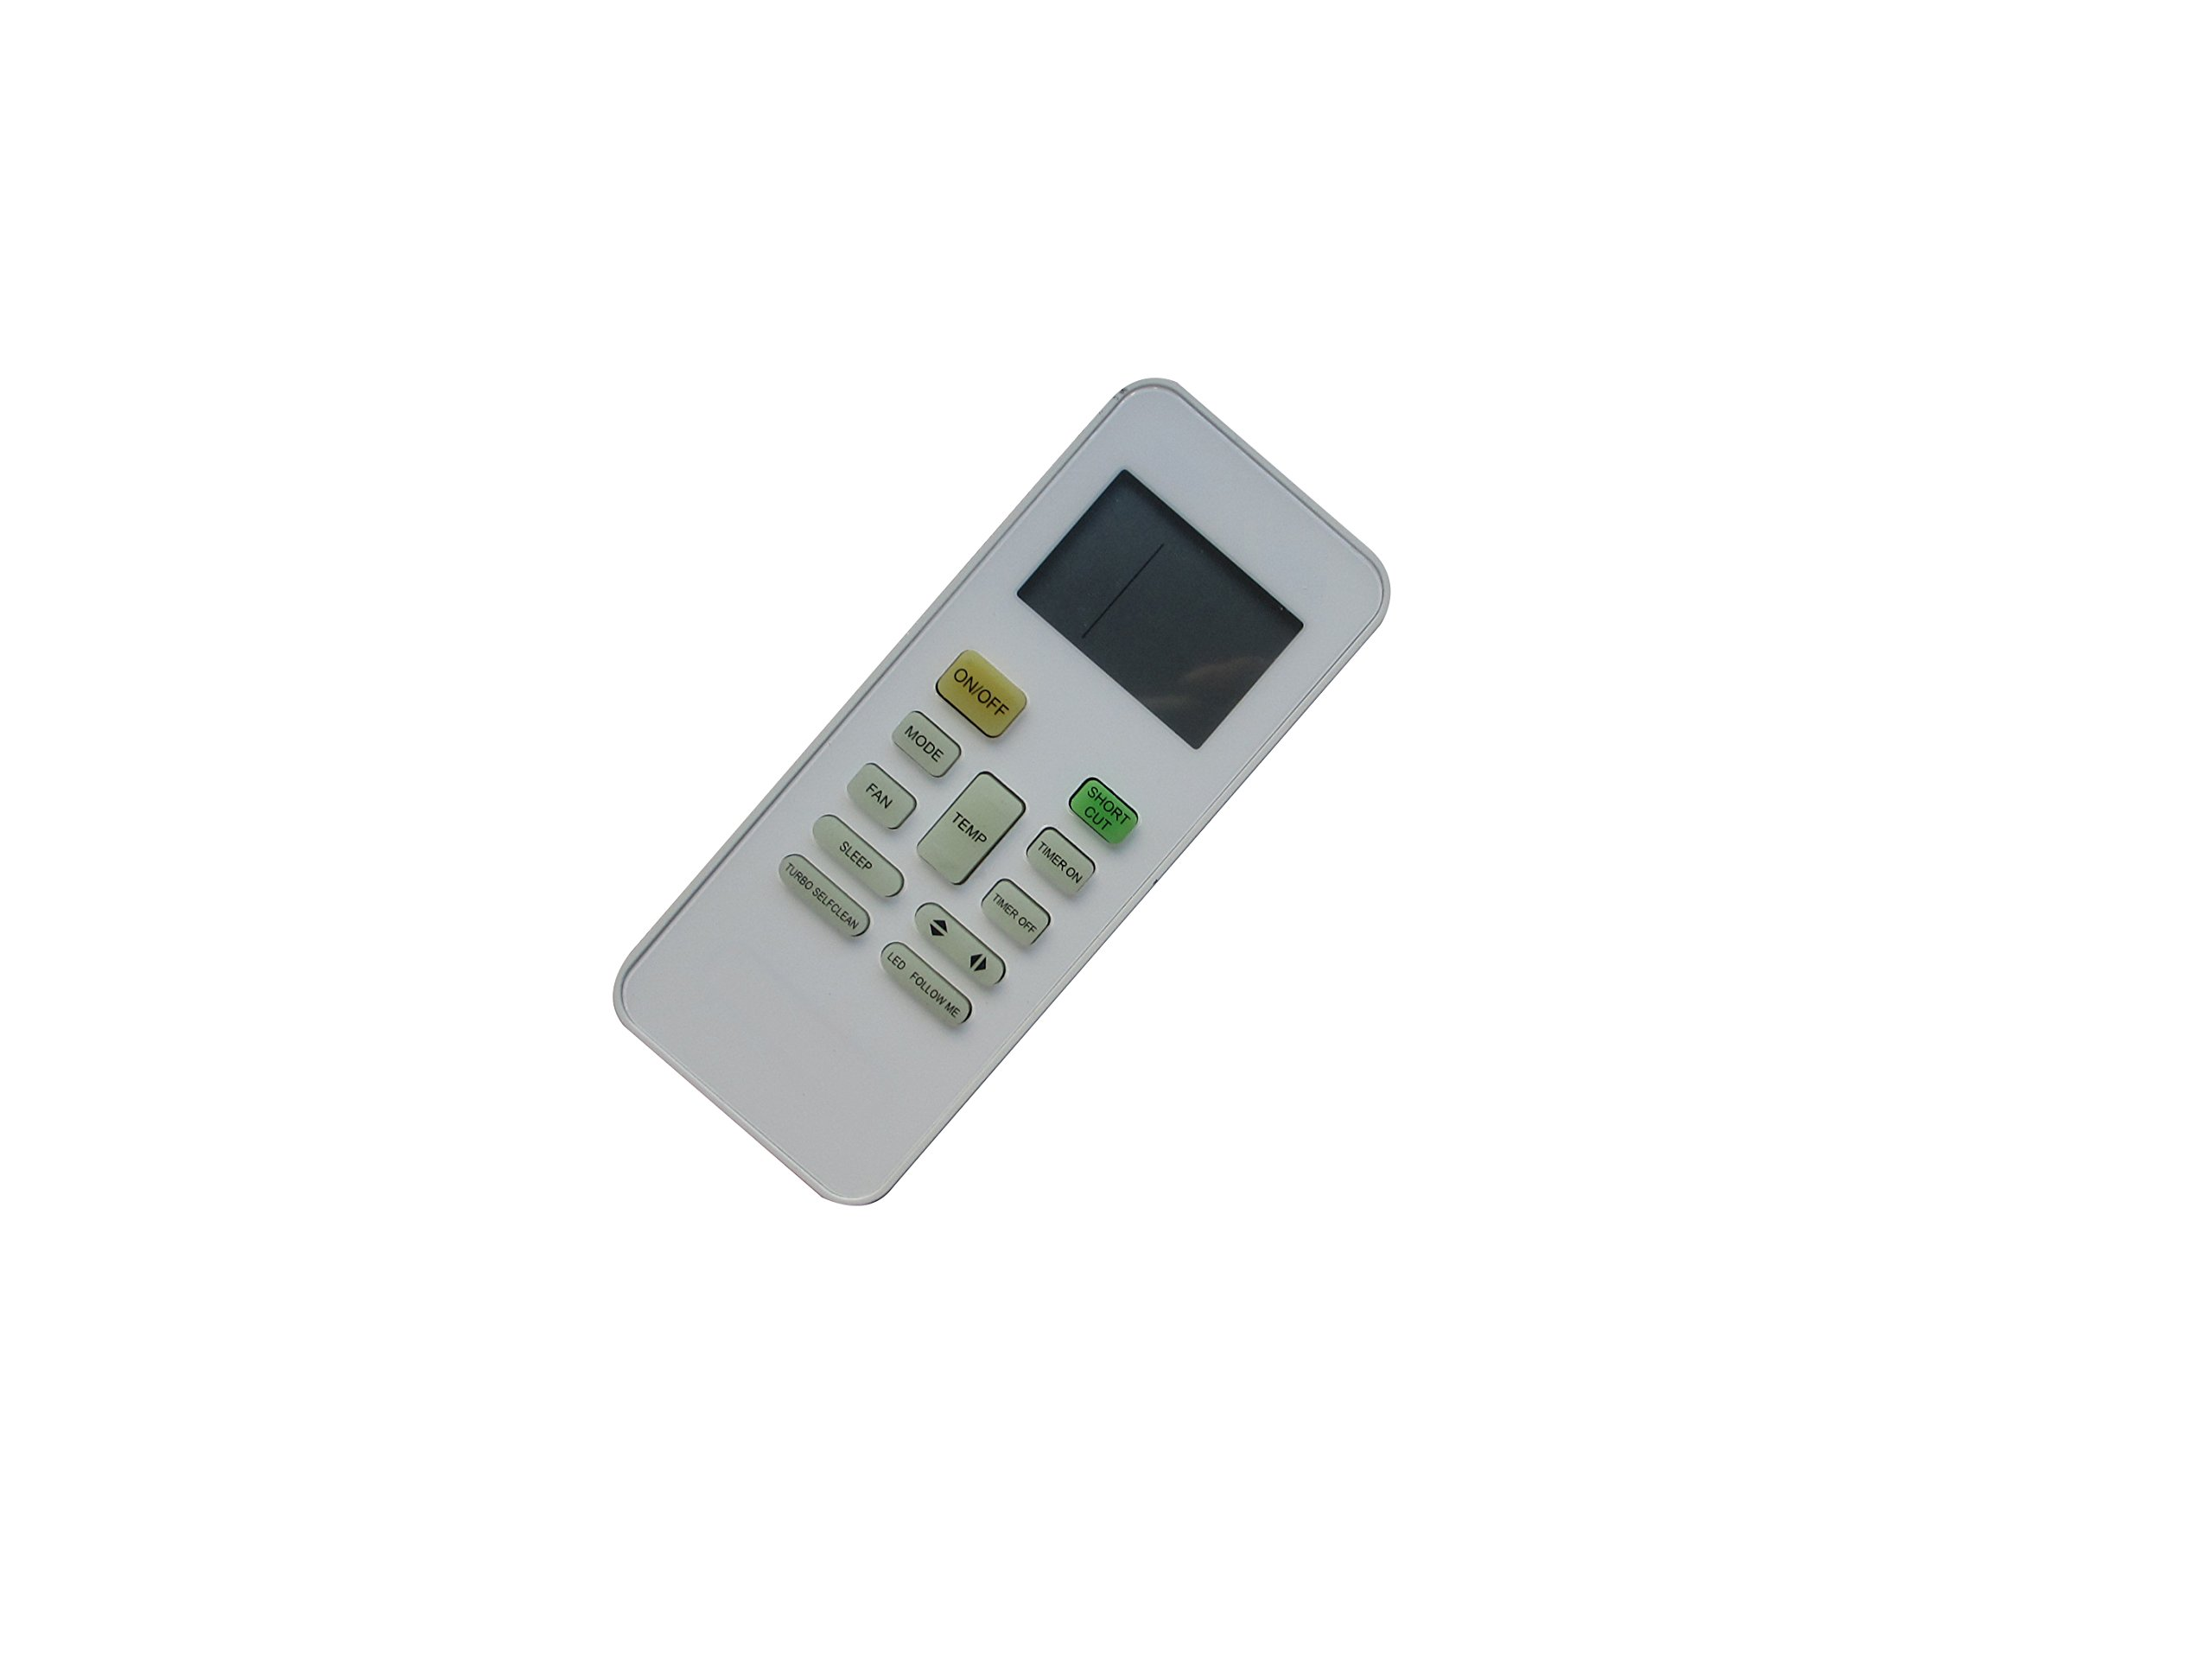 Easytry123 Remote Control For Comfort-aire RG52A1/BGEFU1 SMA09SA-0 SMH09SA-0 SMA12SA-0 SMH12SA-0 SMA18SA-1 SMH18SA-1 Air Condtioner